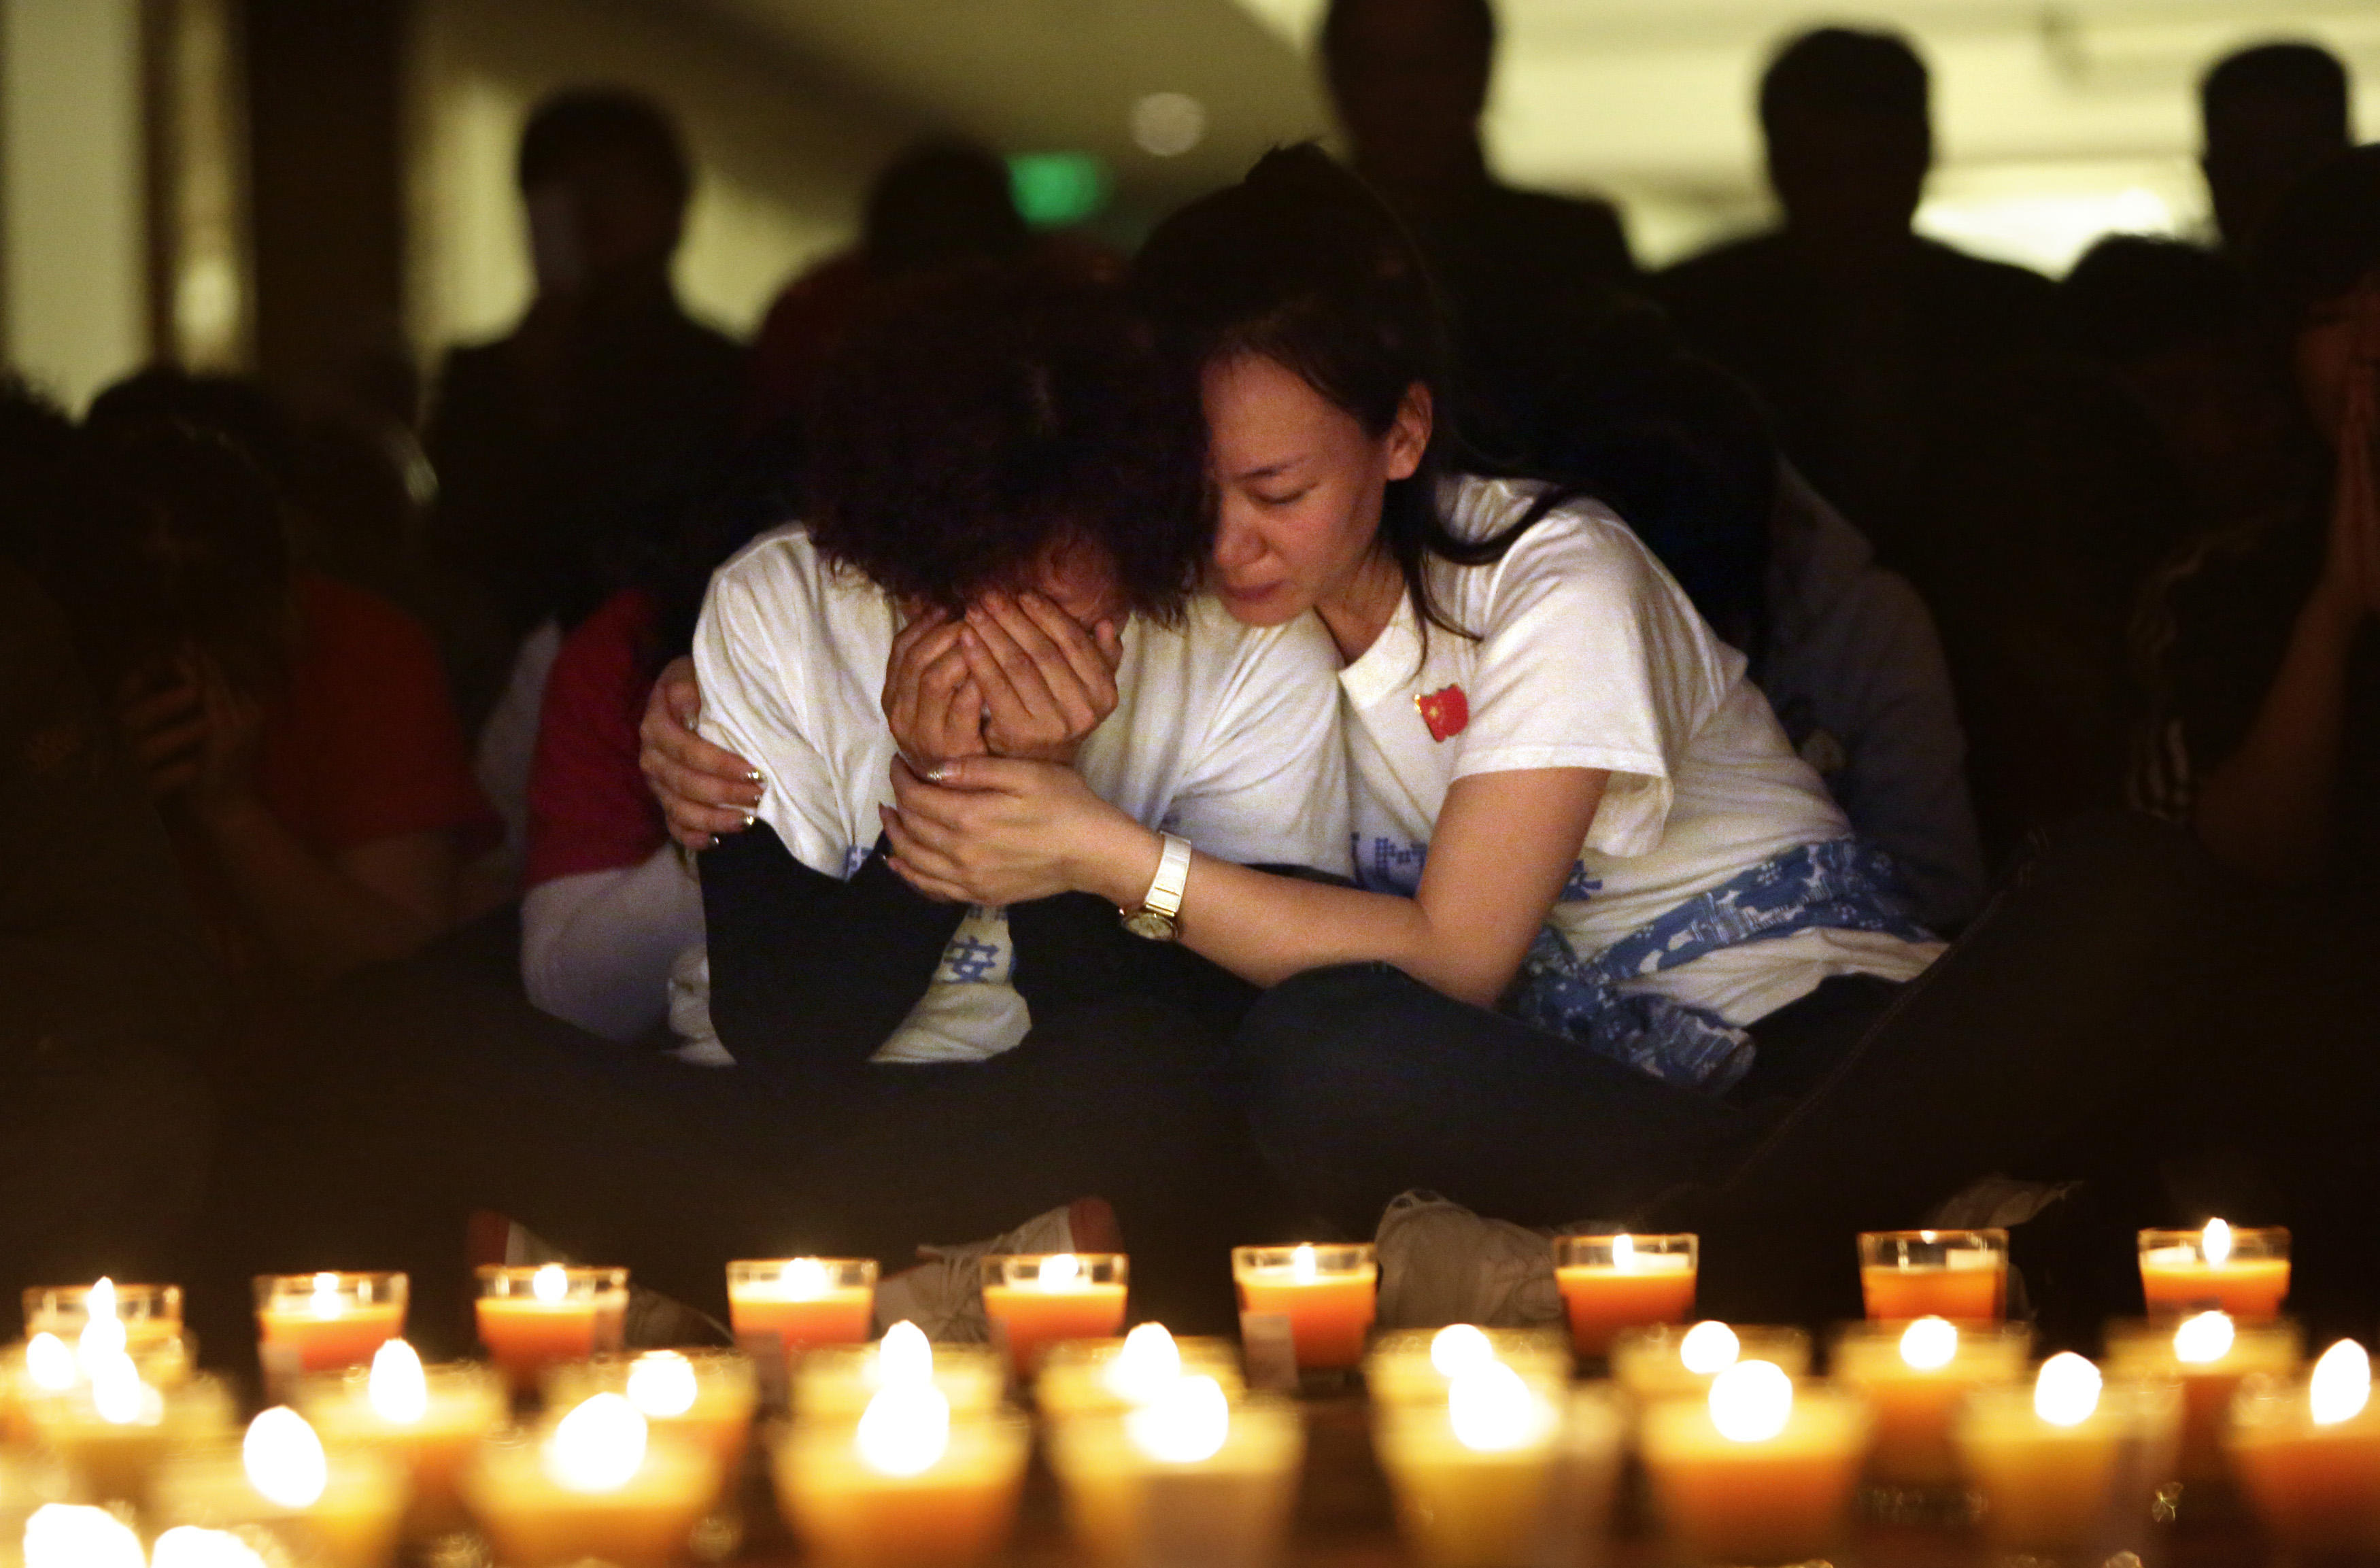 A family member cries as she and other relatives pray during a candlelight vigil for passengers aboard the missing Malaysia Airlines Flight 370 at Lido Hotel, in Beijing, on April 8, 2014, after a month of searching for the missing aircraft